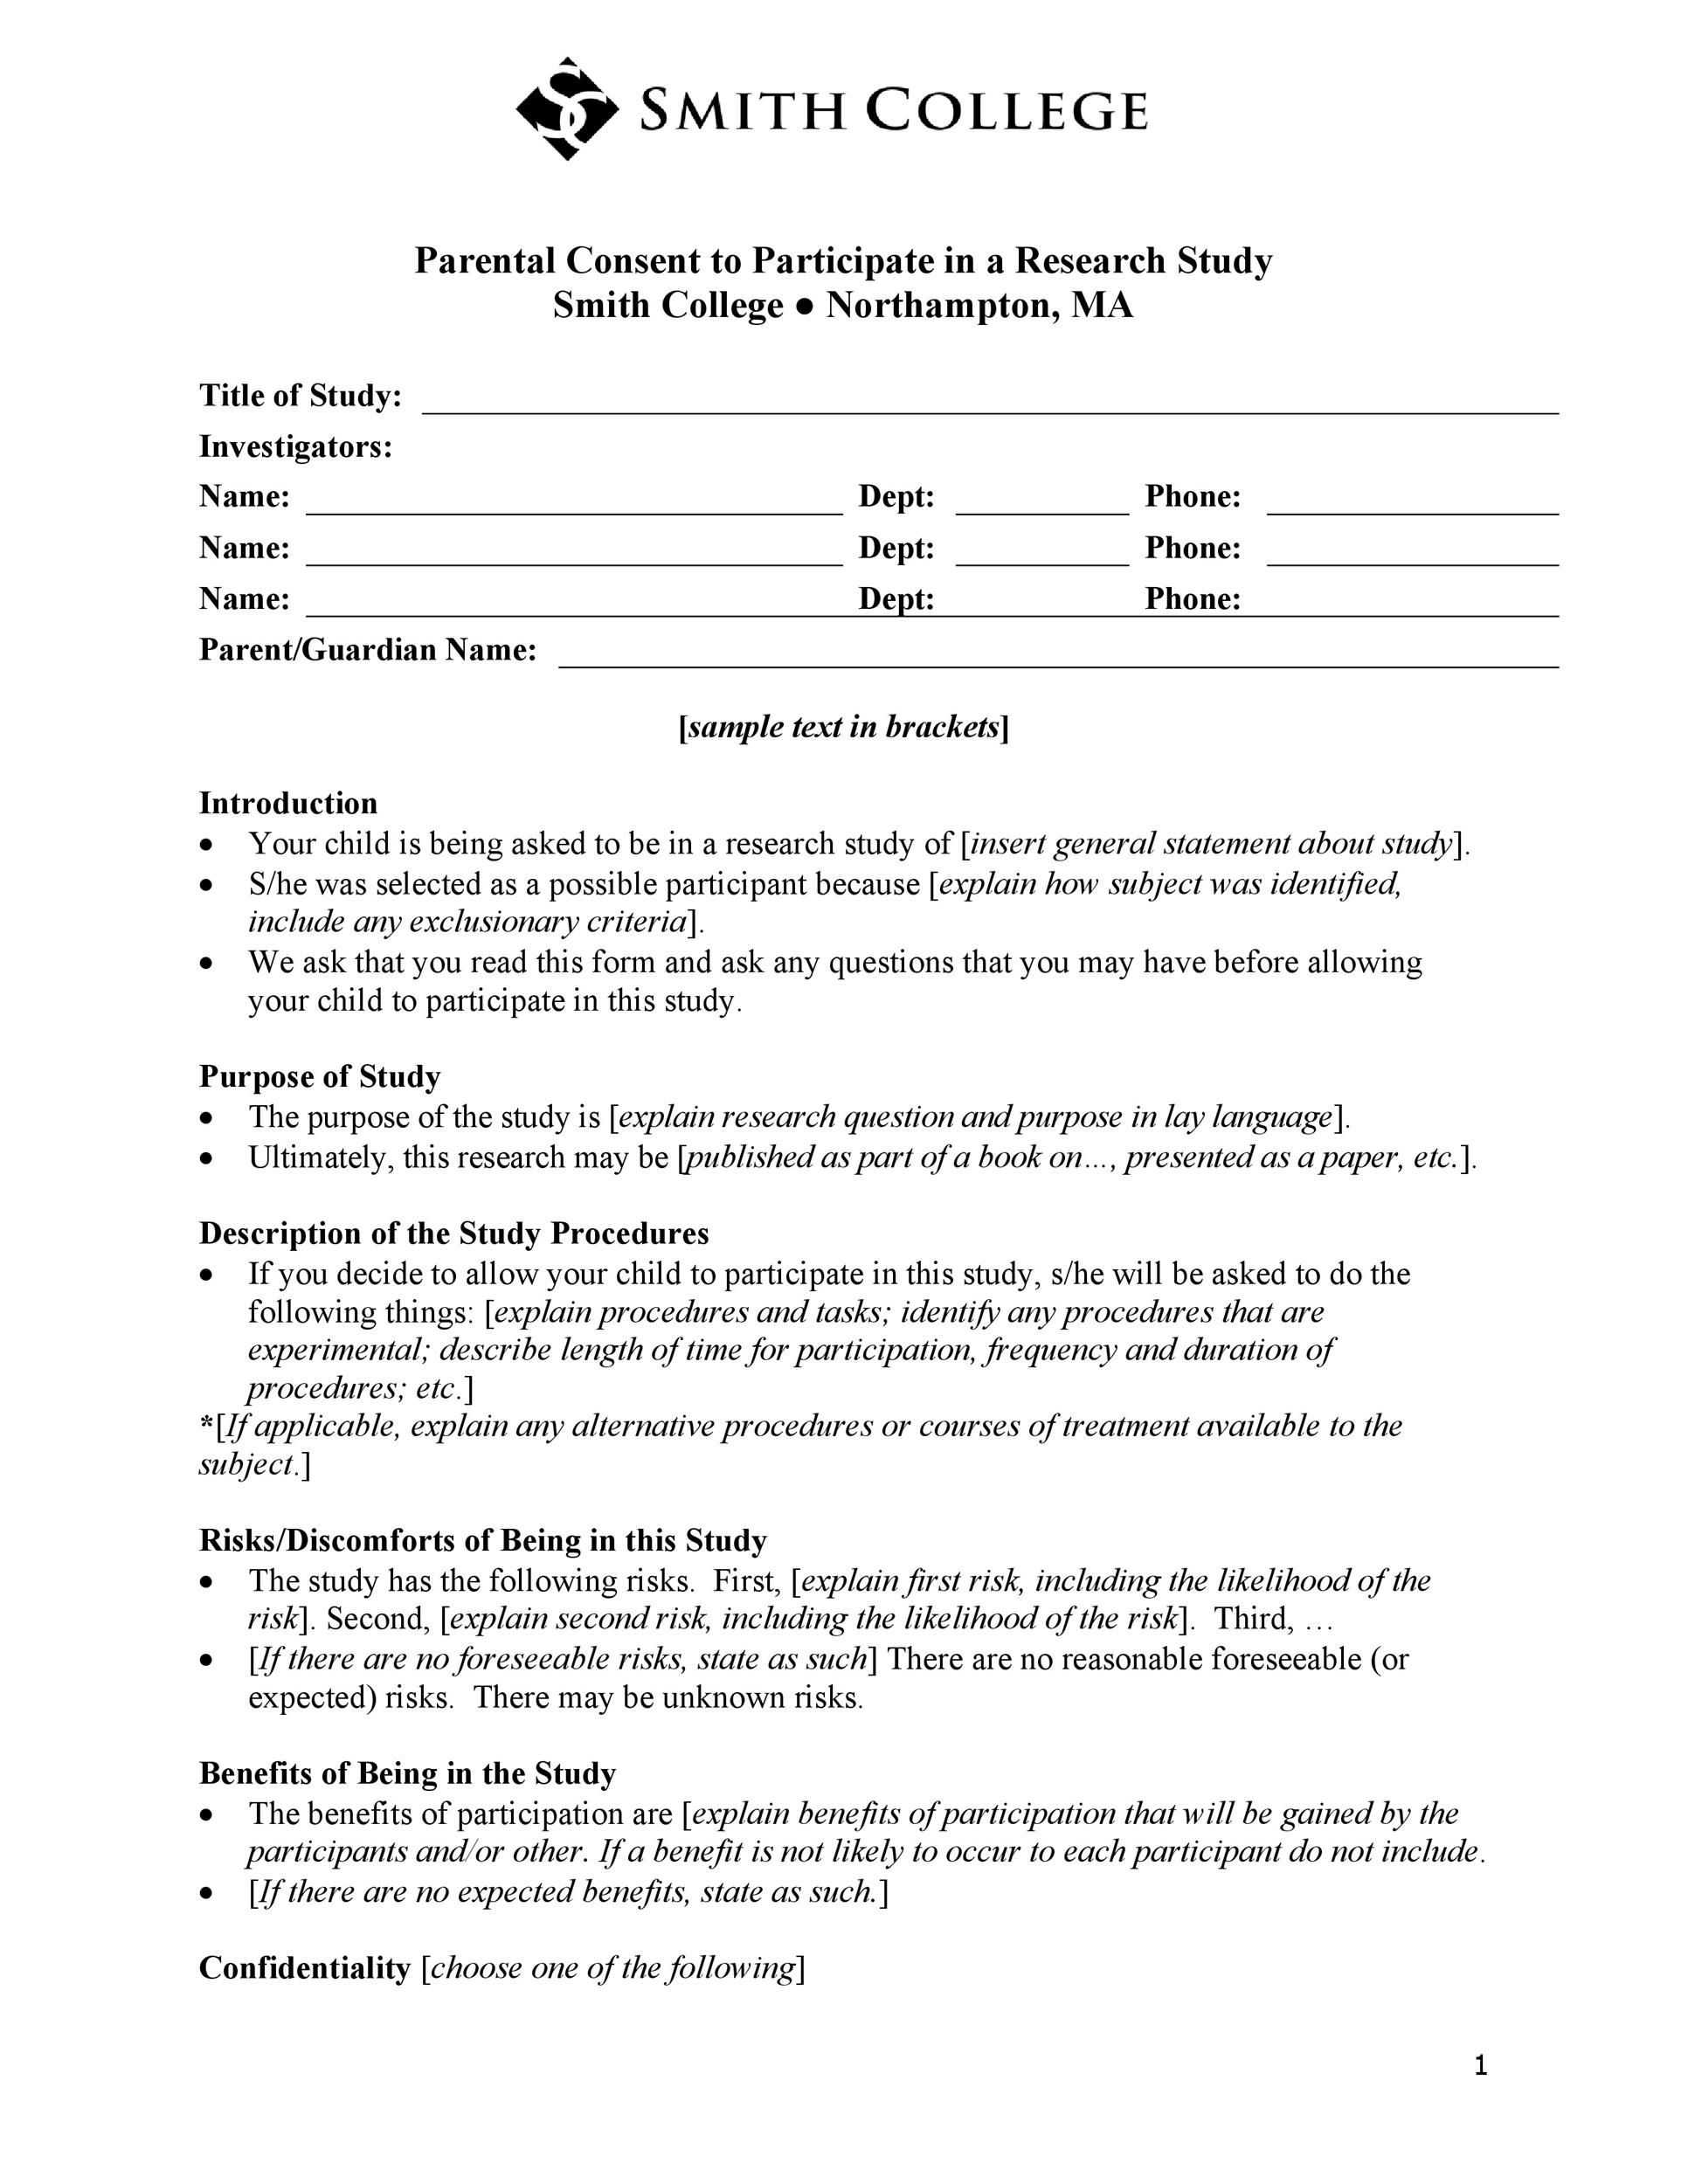 Free parental consent form template 11